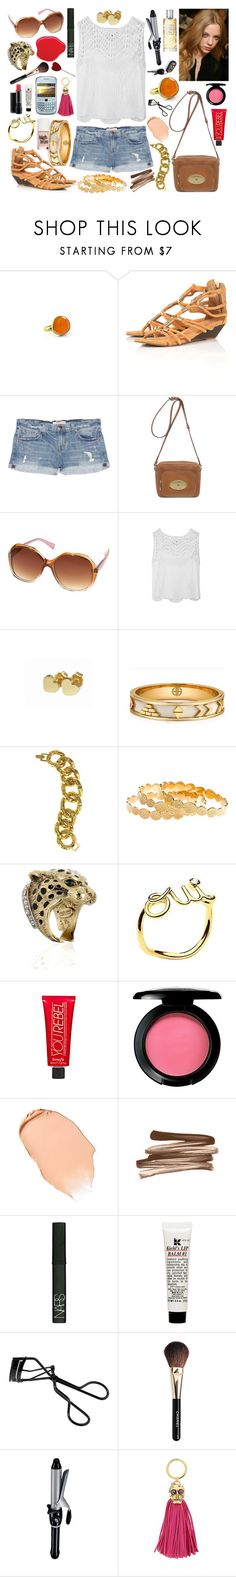 """""""08-19-11"""" by belledenuit ❤ liked on Polyvore featuring Pippa Small, J Brand, Mulberry, Topshop, Versus, 3.1 Phillip Lim, Jennifer Meyer Jewelry, House of Harlow 1960, Kenneth Jay Lane and Melinda Maria"""